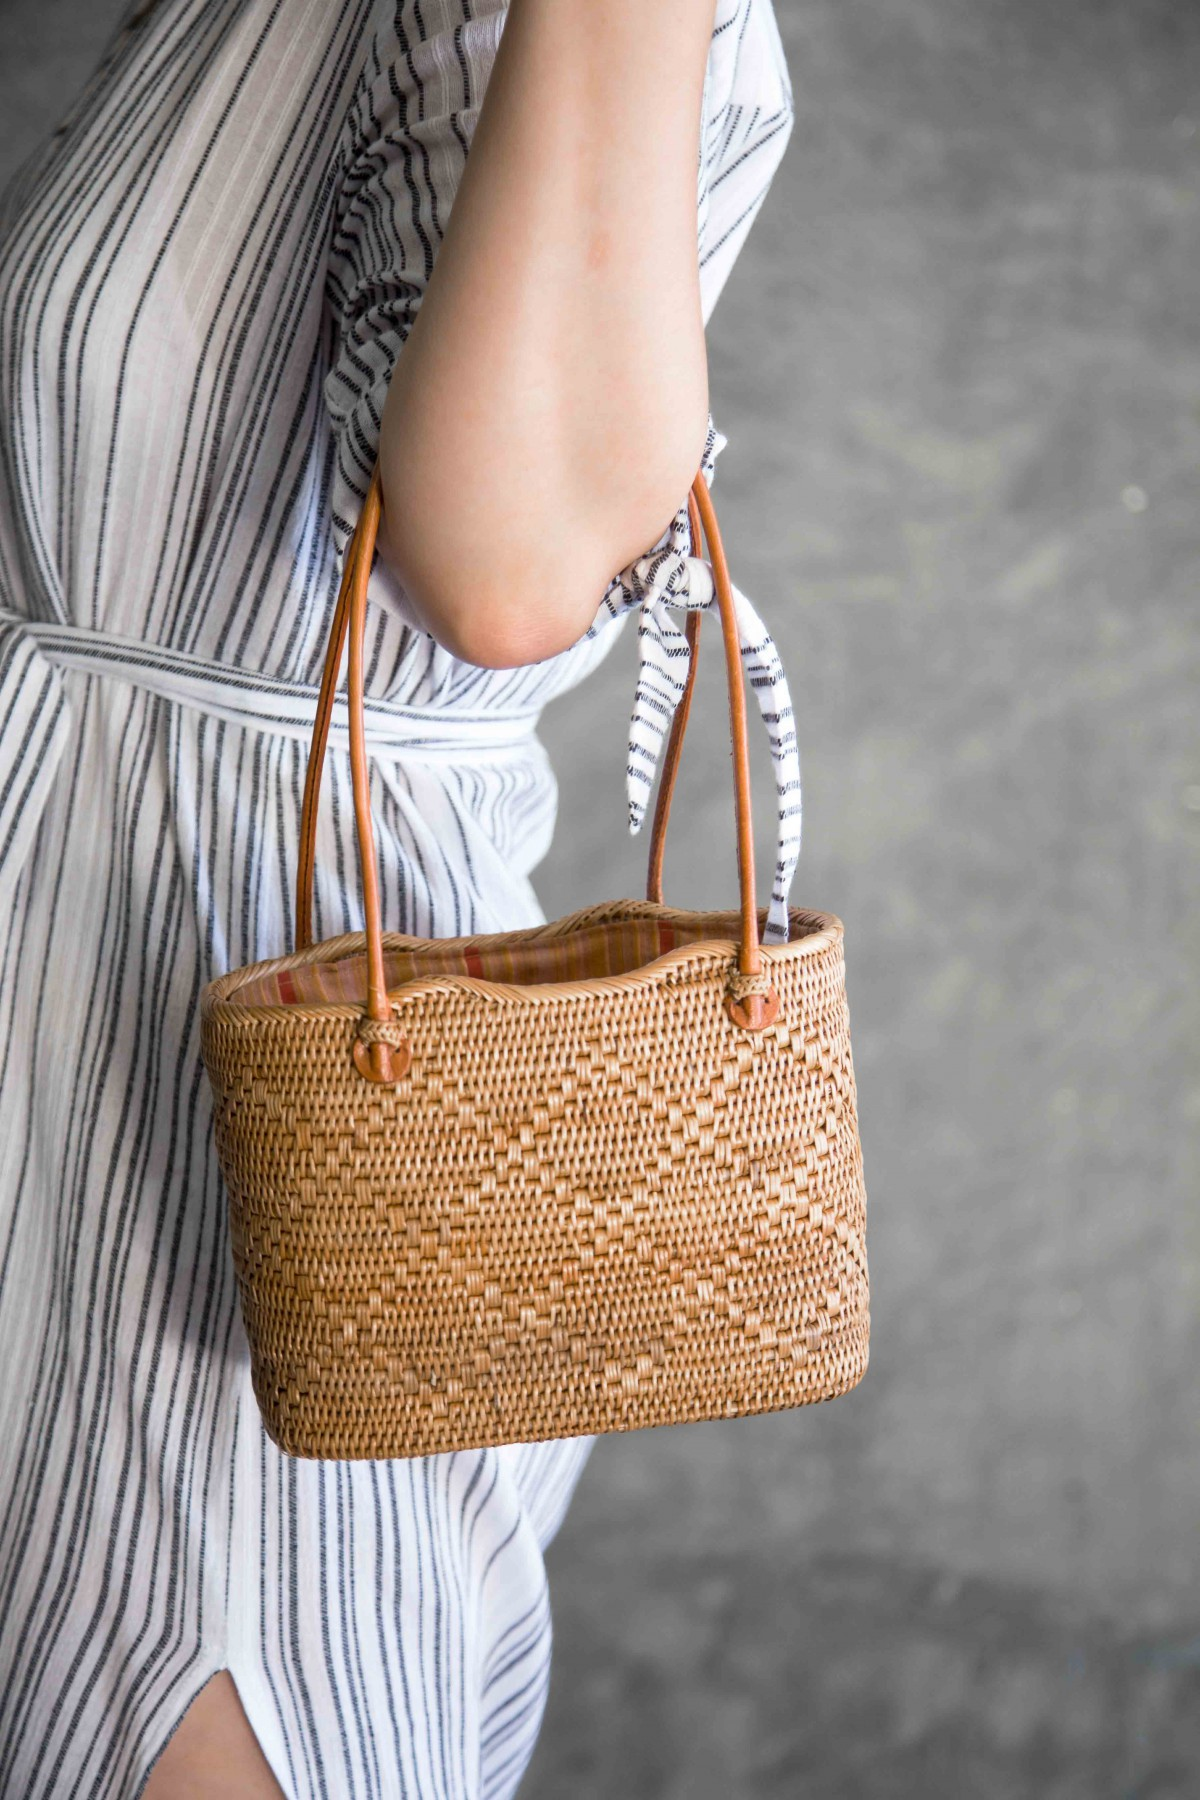 Basket Handbag Summer